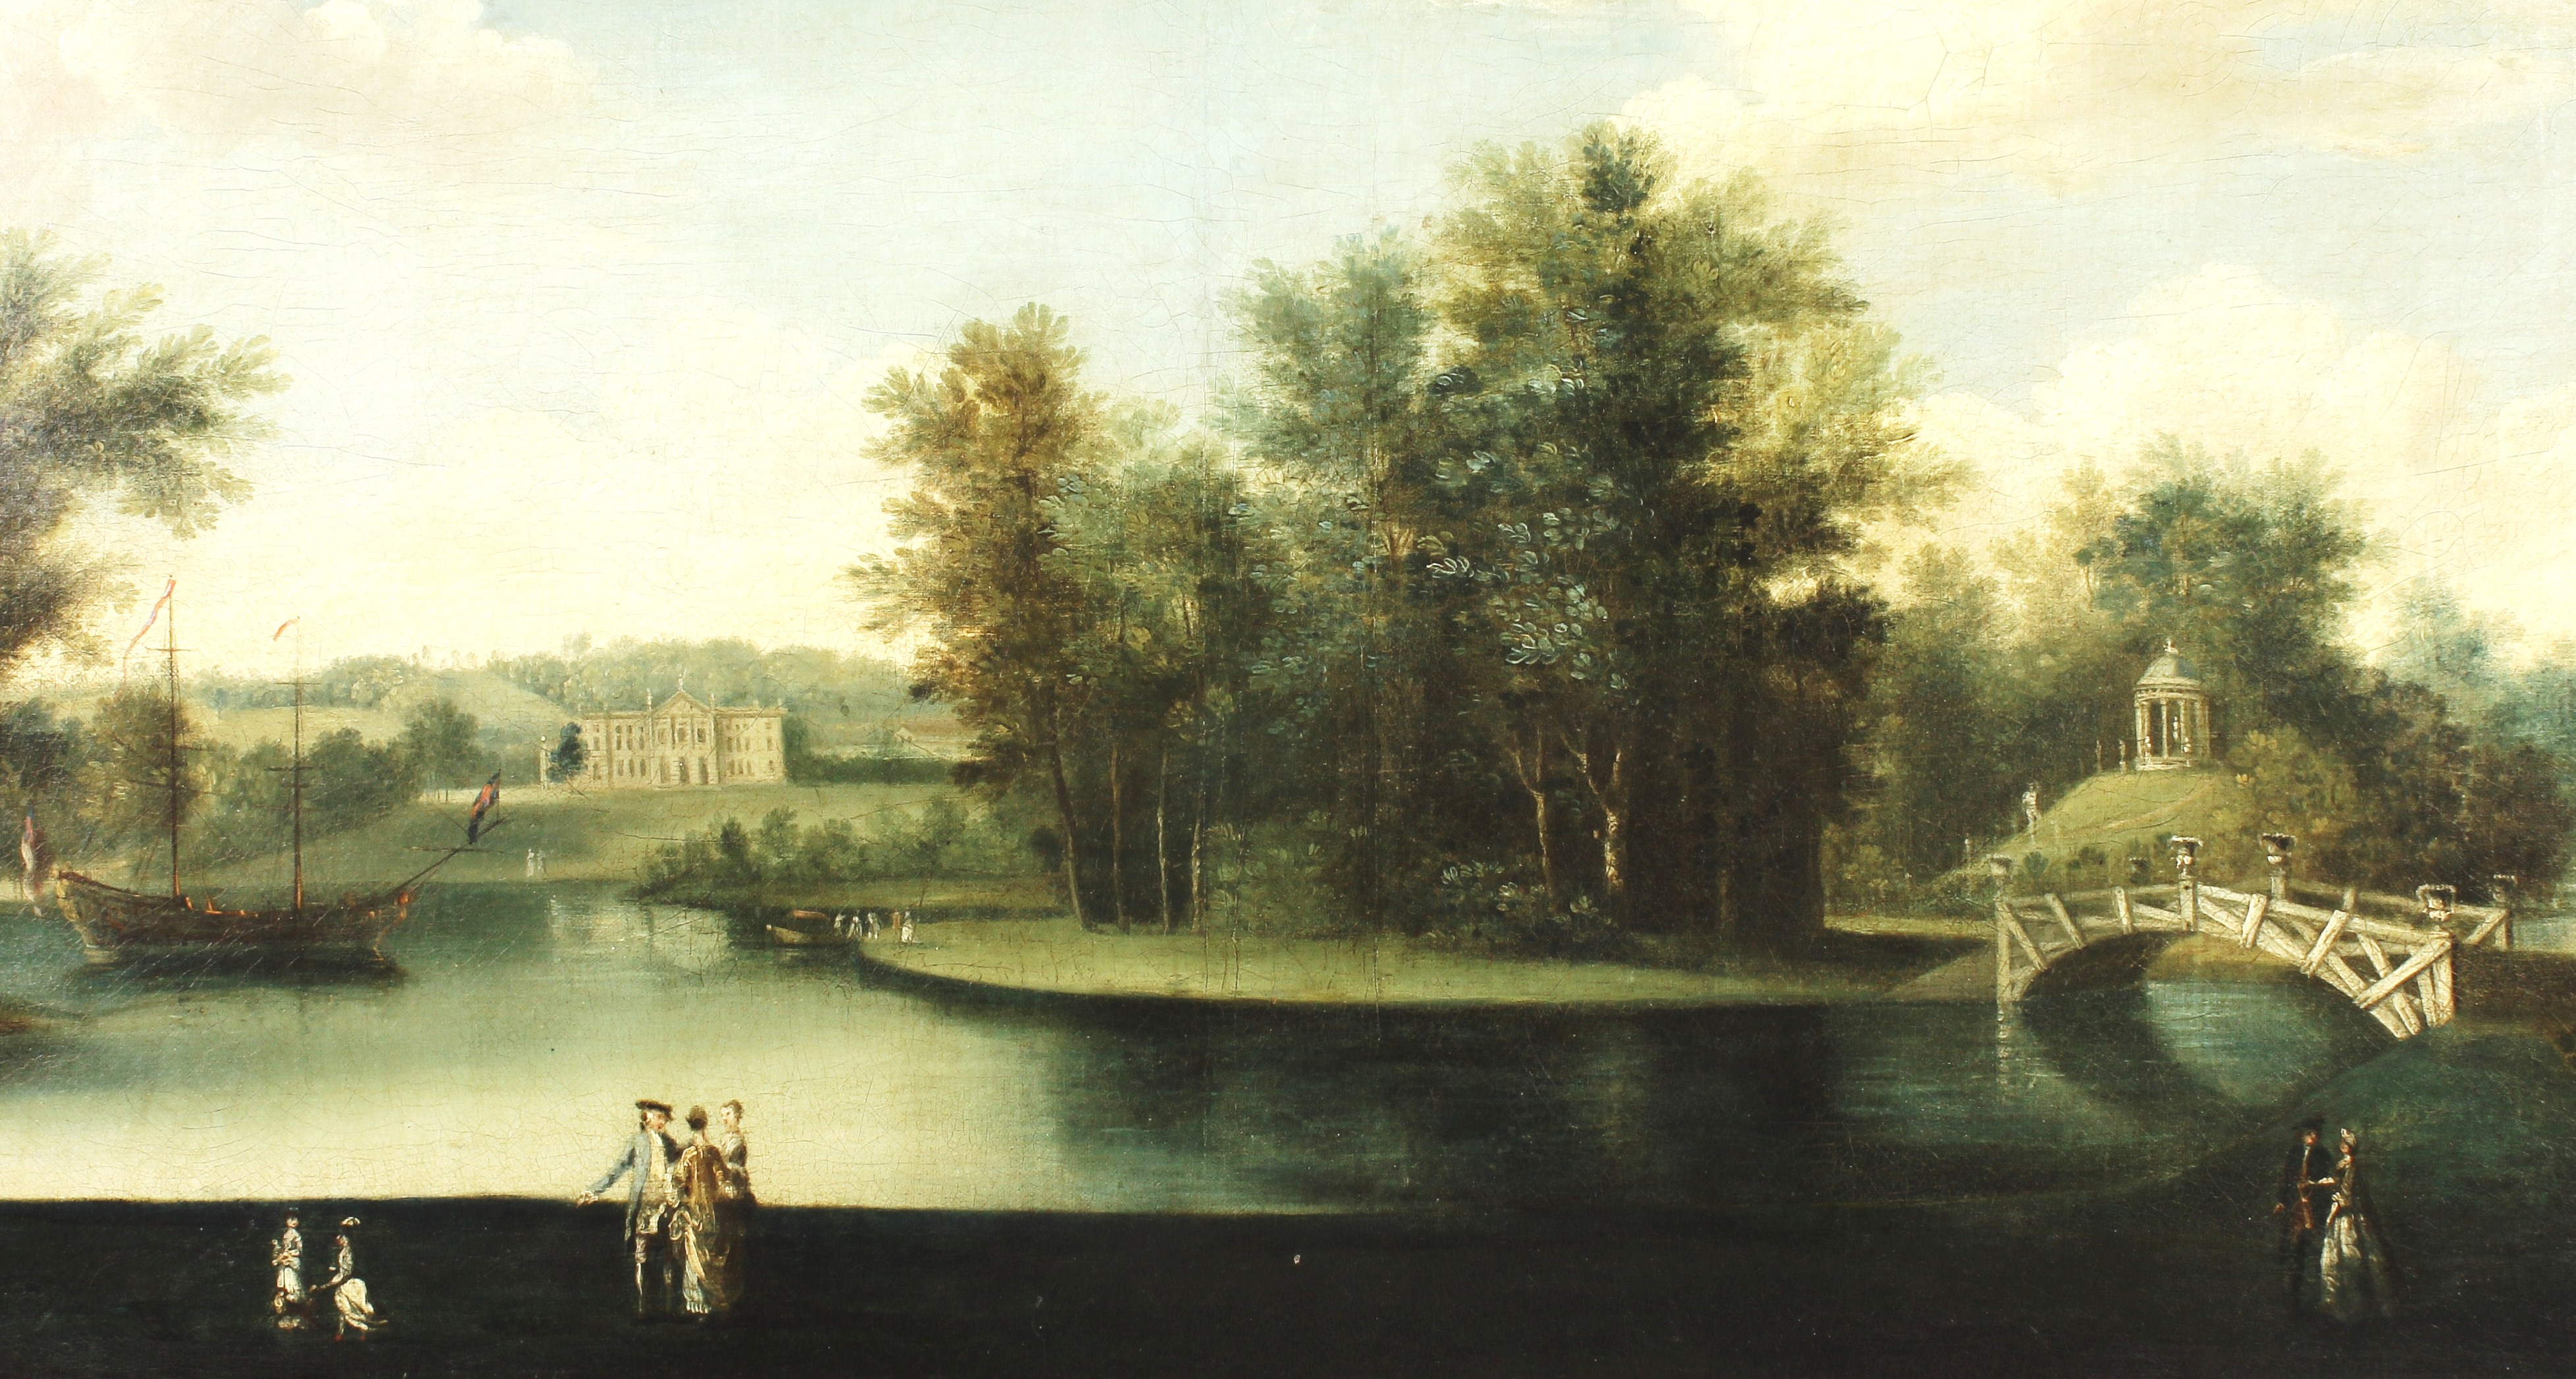 Wm. Hannan, British, 1725-1772-5, Wycombe Park. Sold For $11,328.